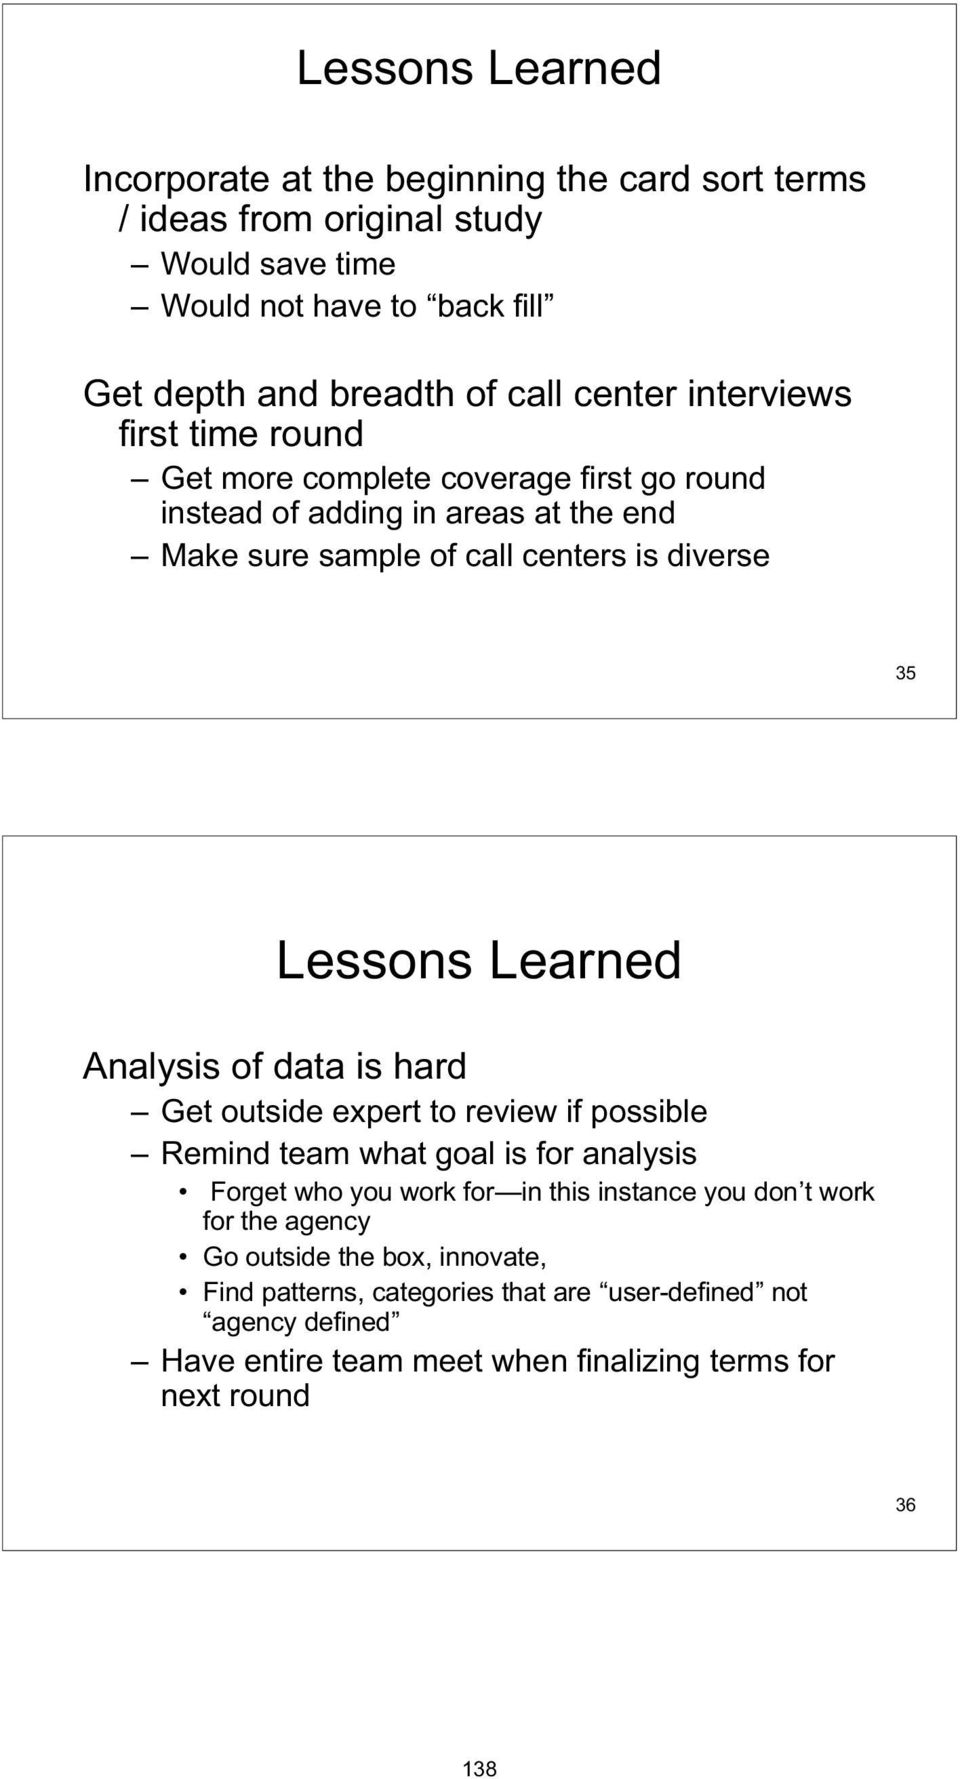 Learned Analysis of data is hard Get outside expert to review if possible Remind team what goal is for analysis Forget who you work for in this instance you don t work